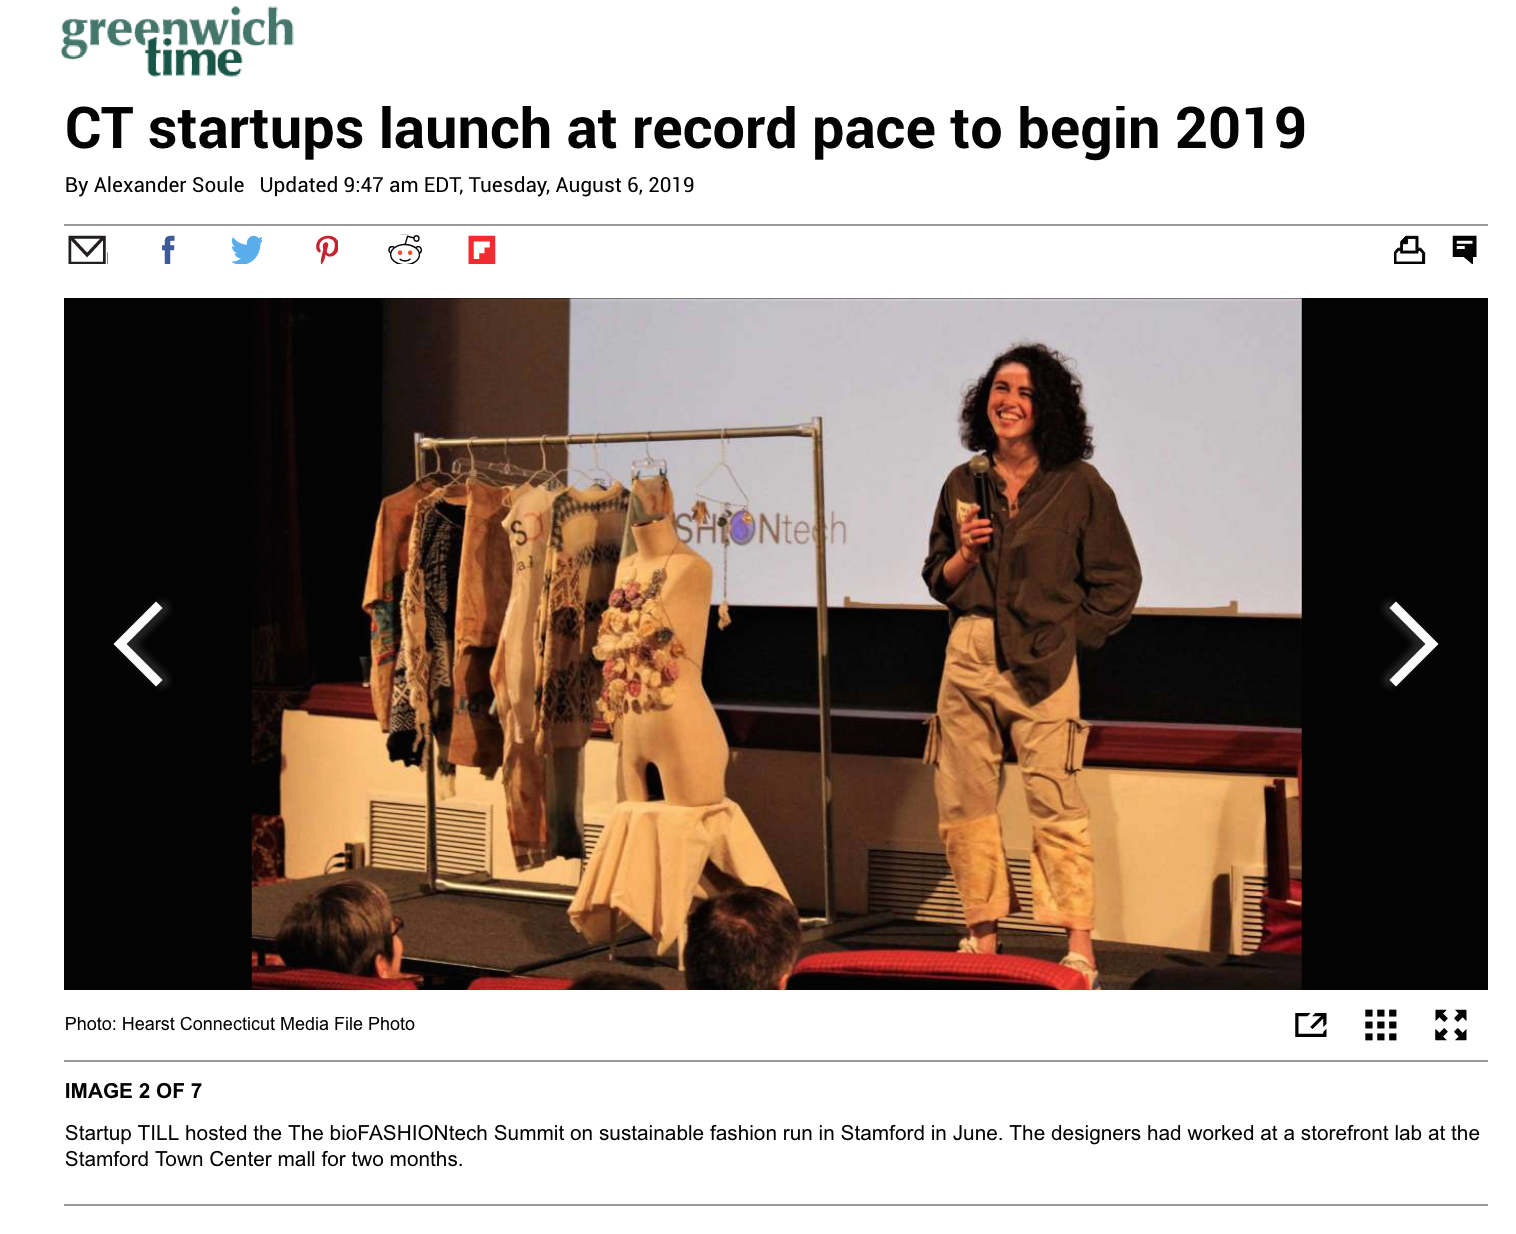 "Greenwich Time: ""CT startups launch at record pace to begin 2019"" - ""Startup TILL hosted the bioFASHIONtech Summit on sustainable fashion run in Stamford in June. The designers had worked at a storefront lab at the Stamford Town Center mall for two months.""August 6, 2019"